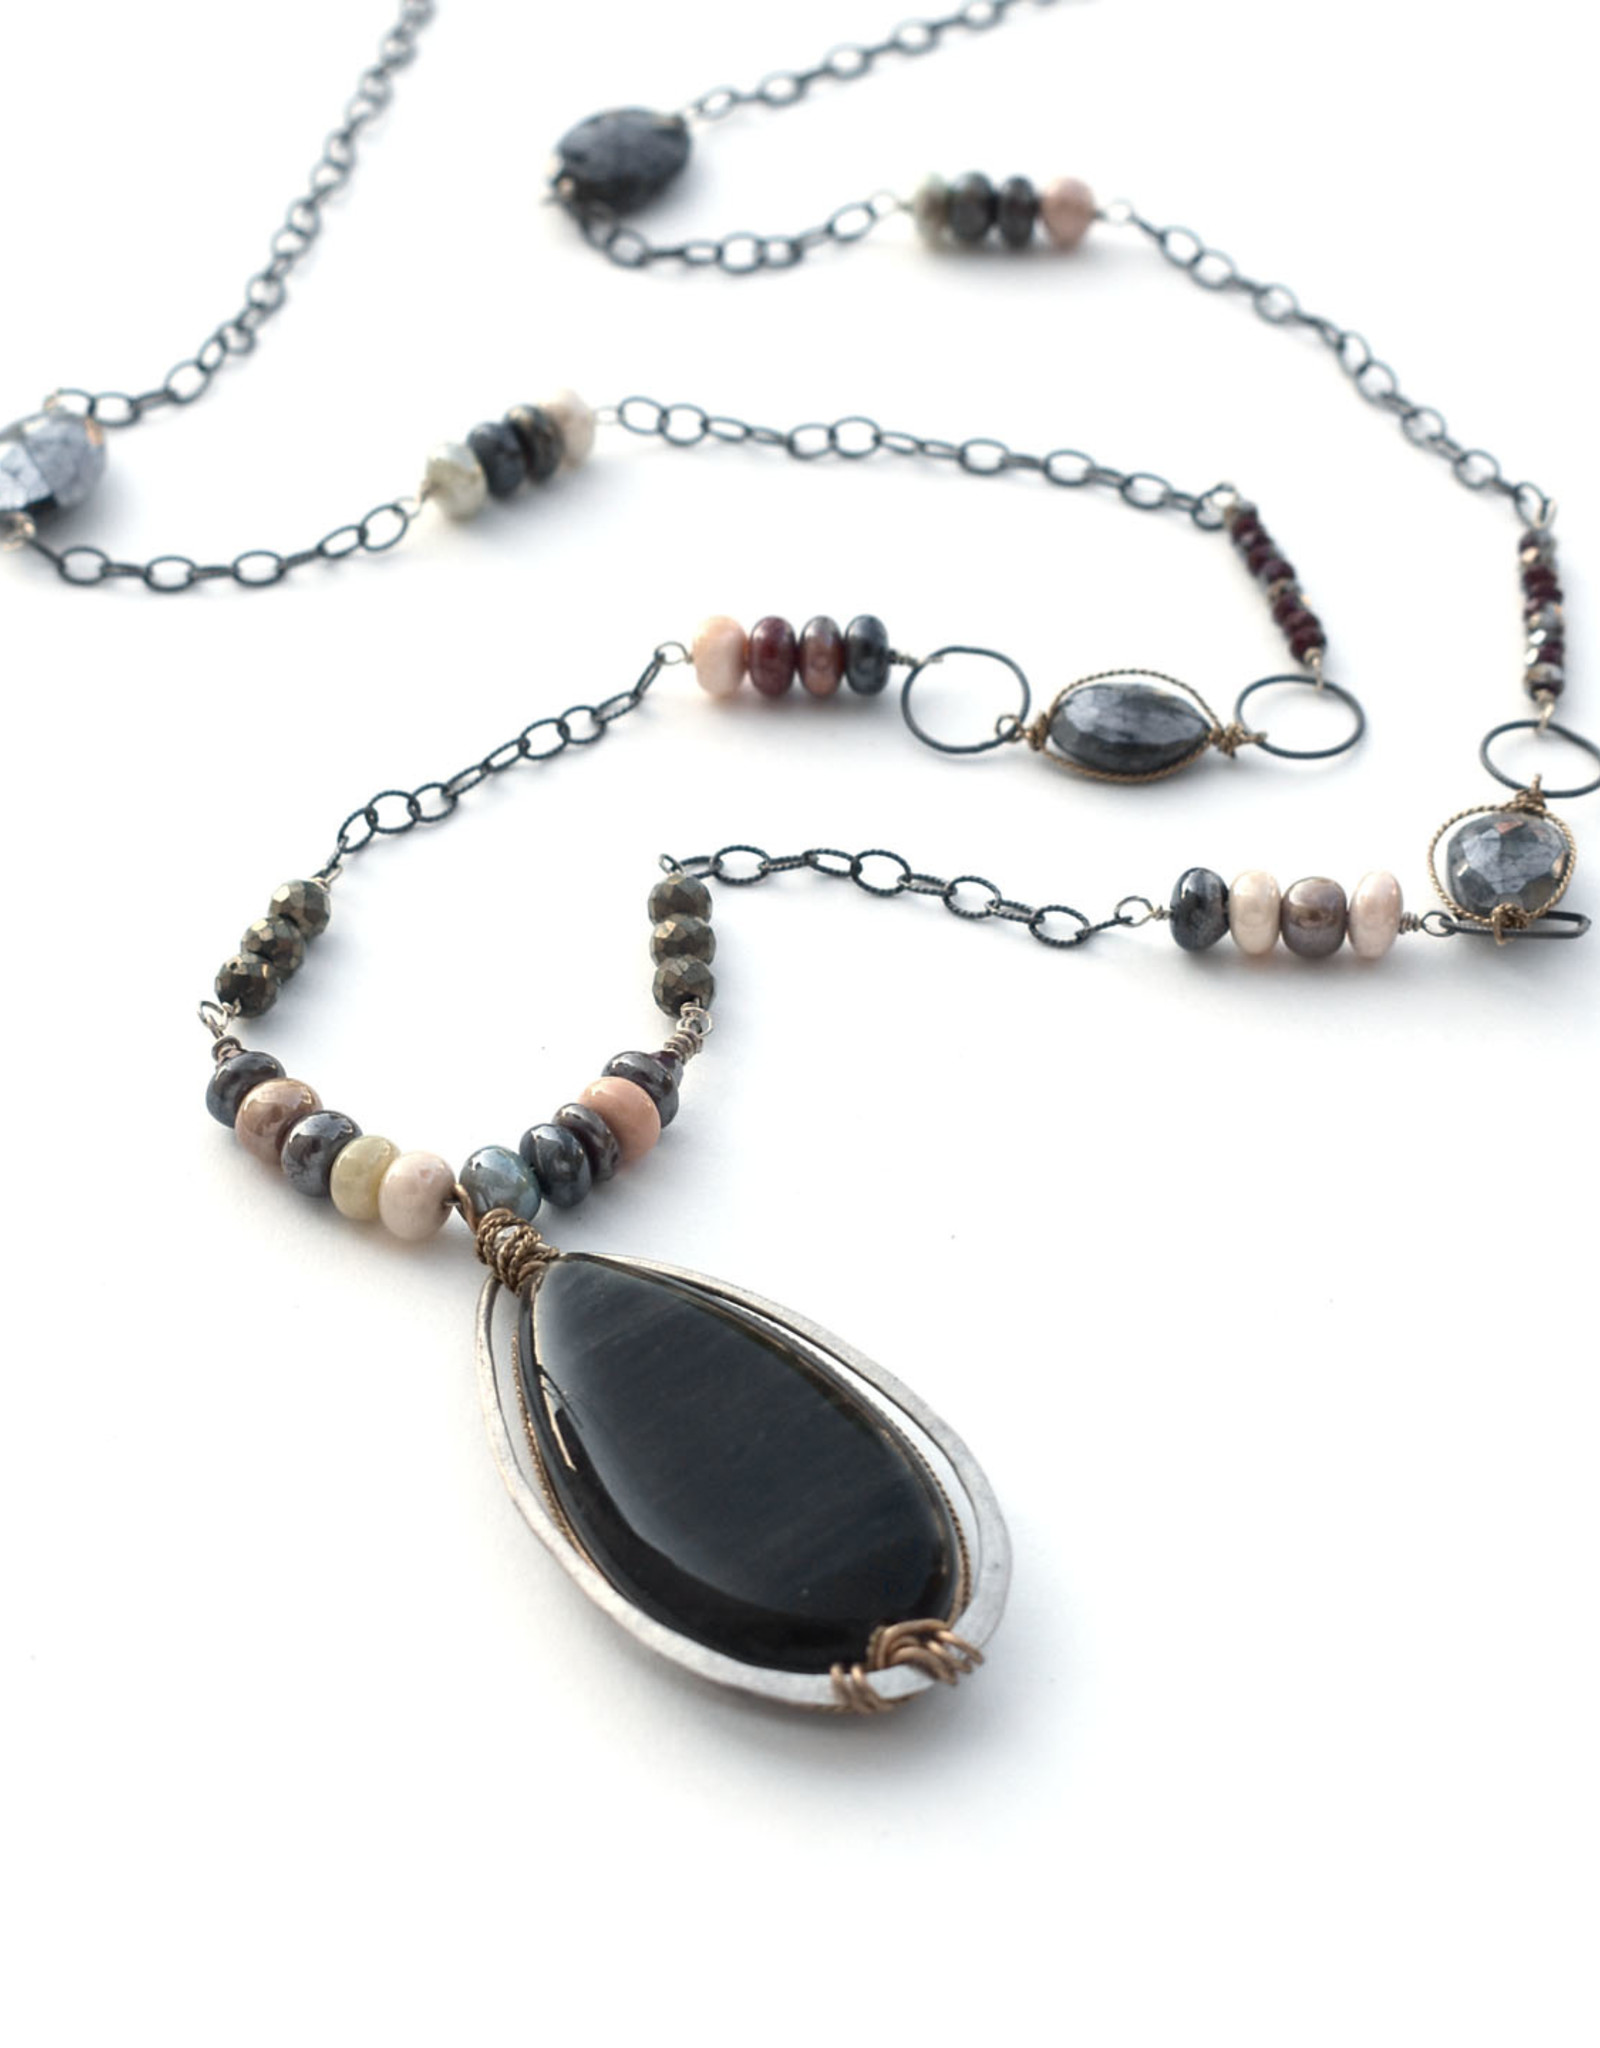 Cat's Eye Opal Pendant Necklace